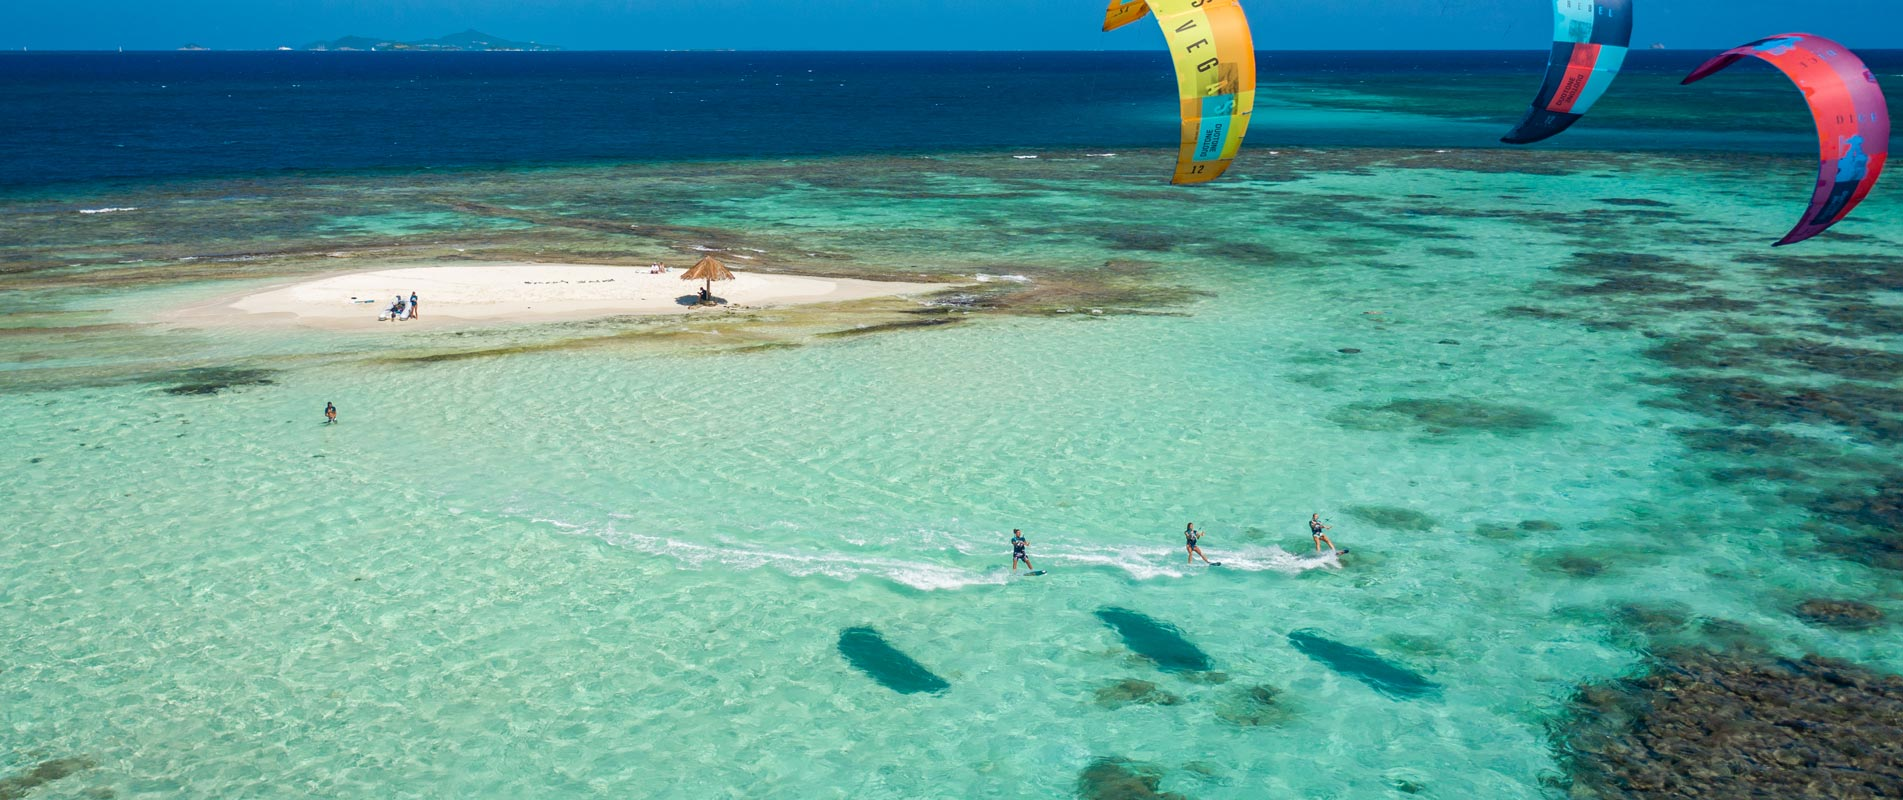 Kitesurfing with Caribbean kite cruise in the Grenadines